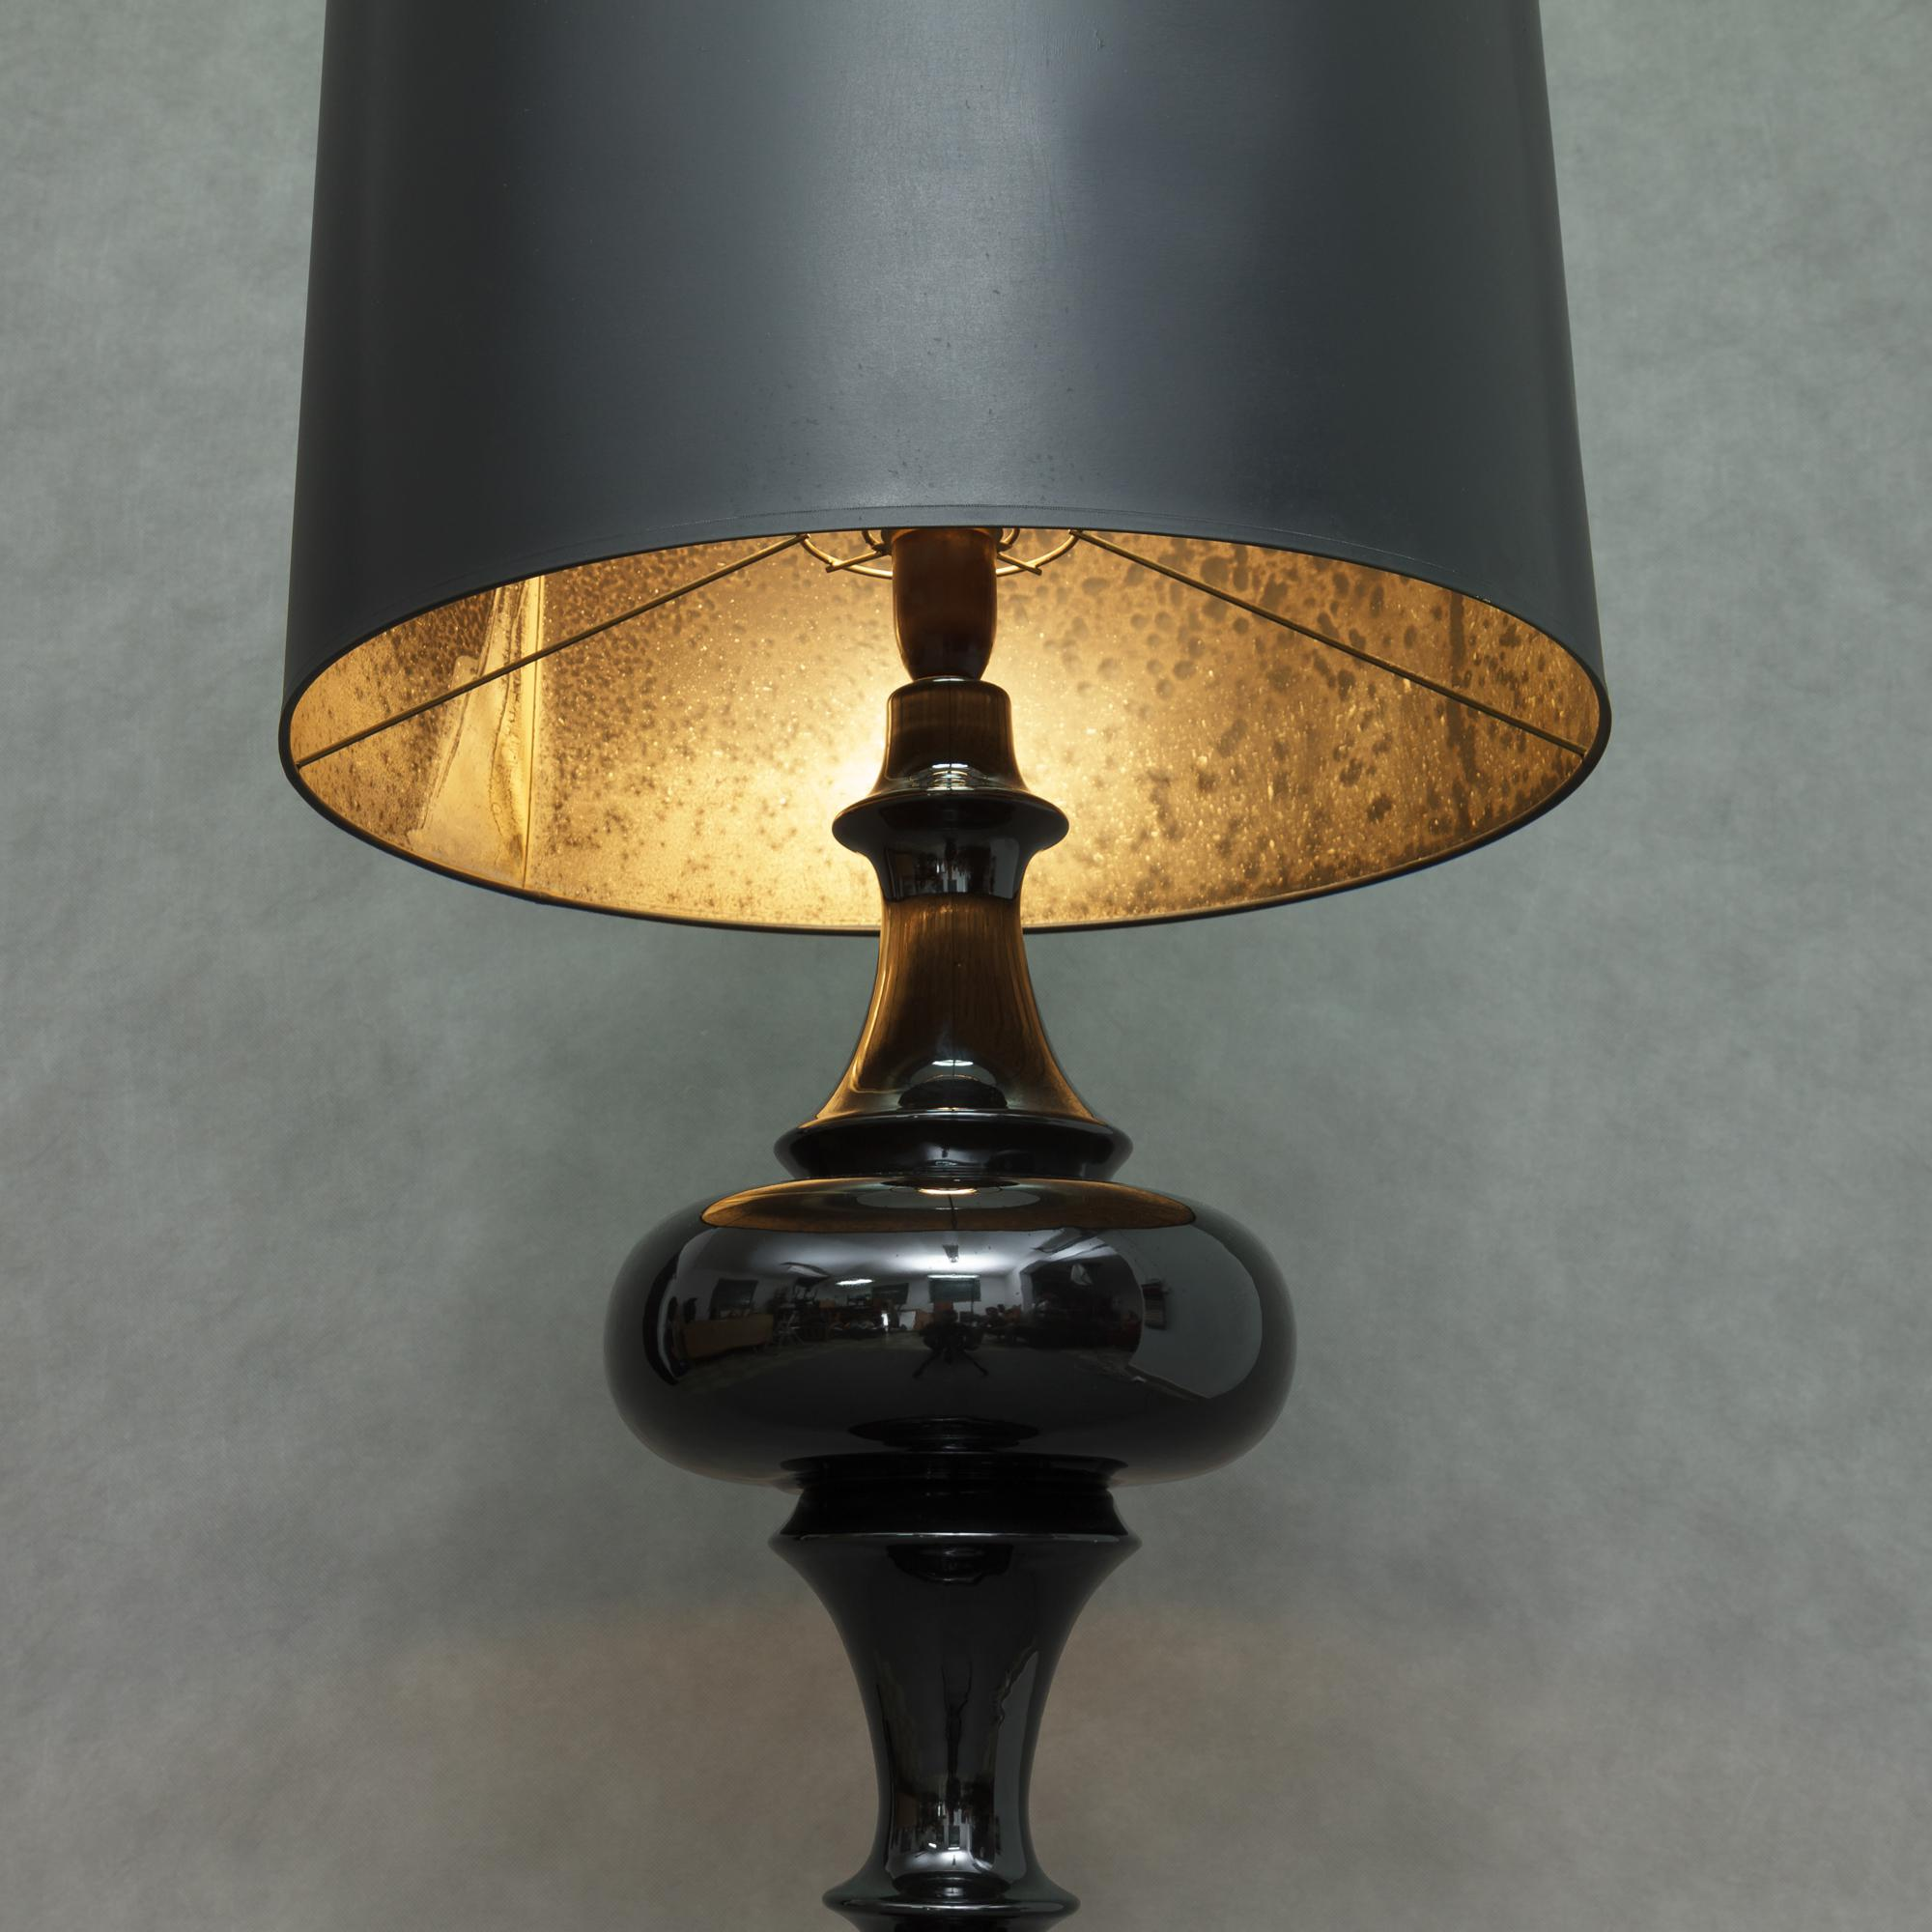 Black Italian Ceramic Floor Lamp Chairish